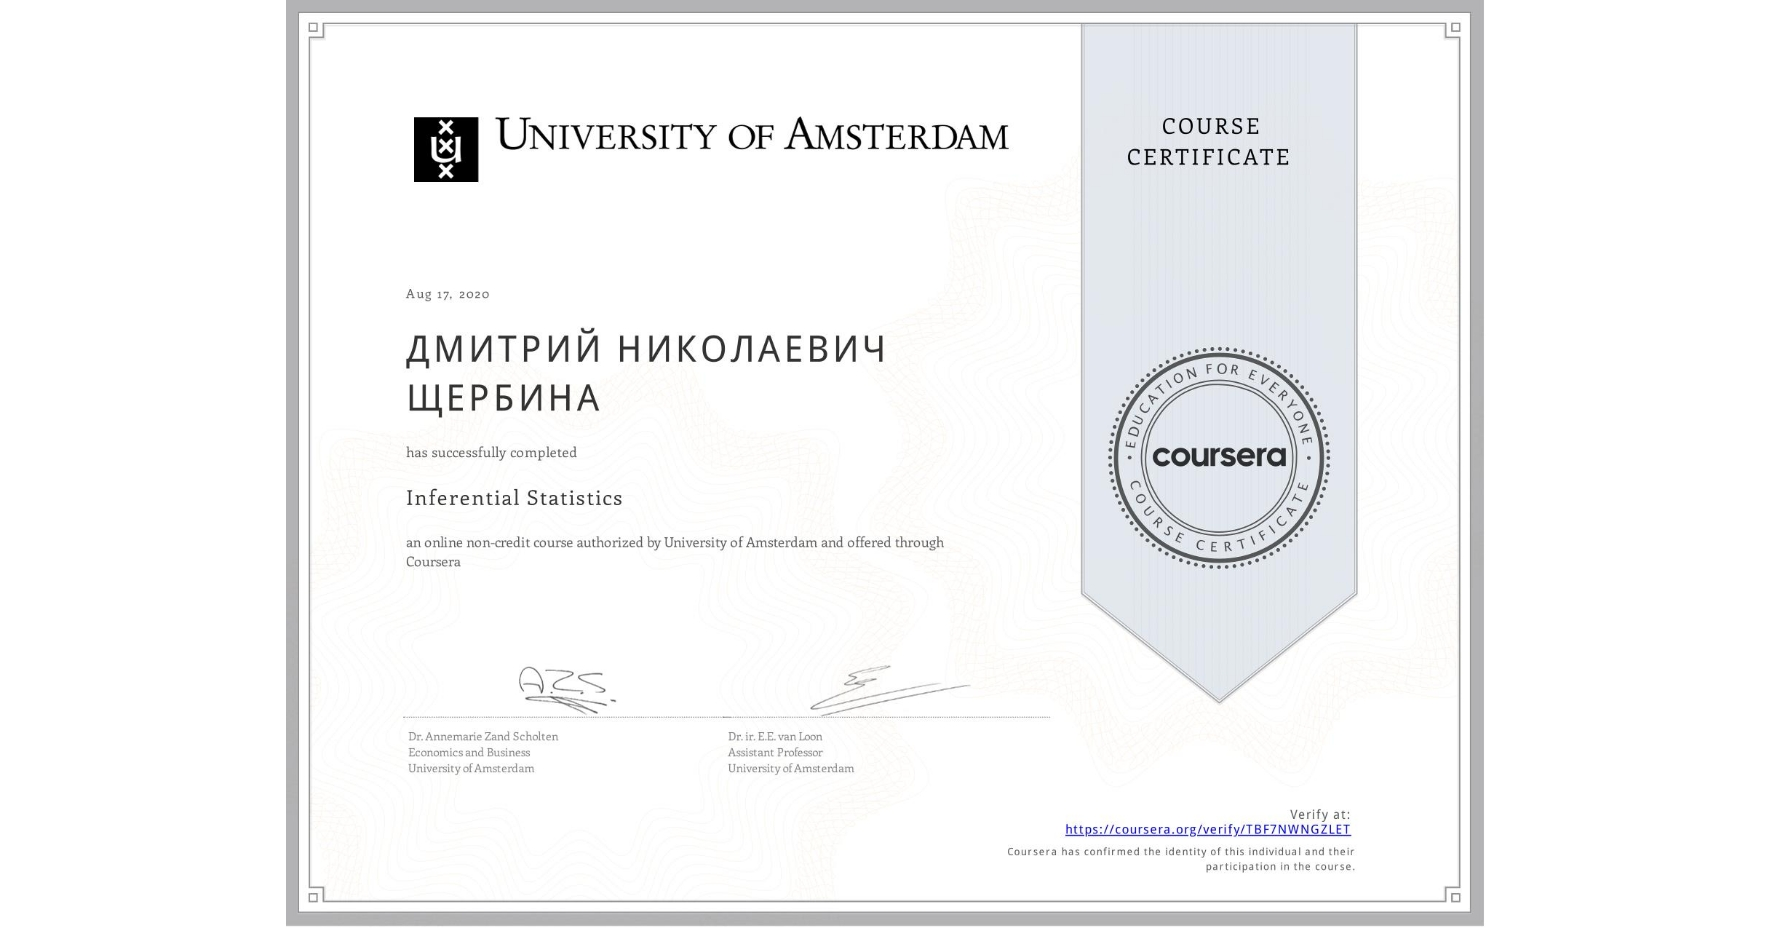 View certificate for ДМИТРИЙ НИКОЛАЕВИЧ ЩЕРБИНА, Inferential Statistics, an online non-credit course authorized by University of Amsterdam and offered through Coursera